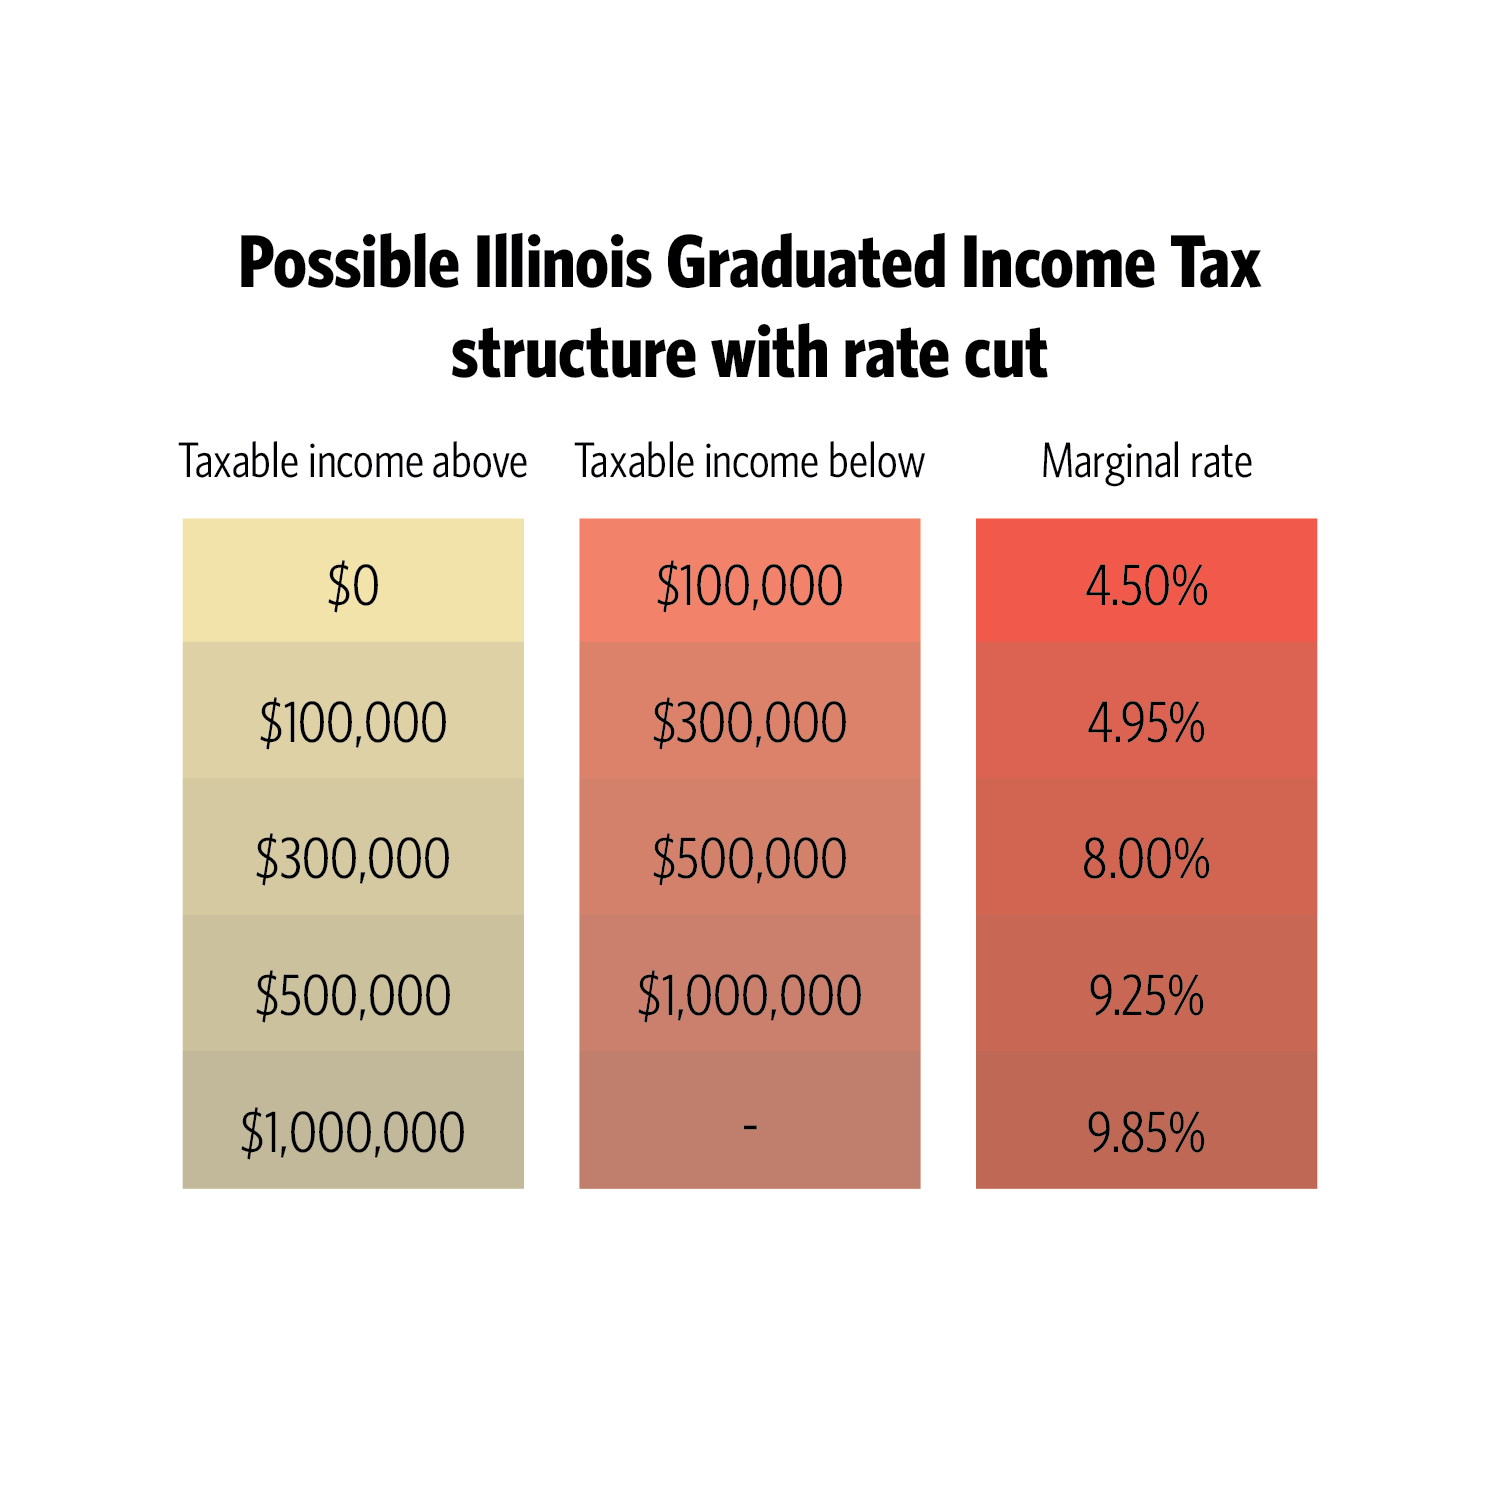 Source: Center for Tax and Budget Accountability